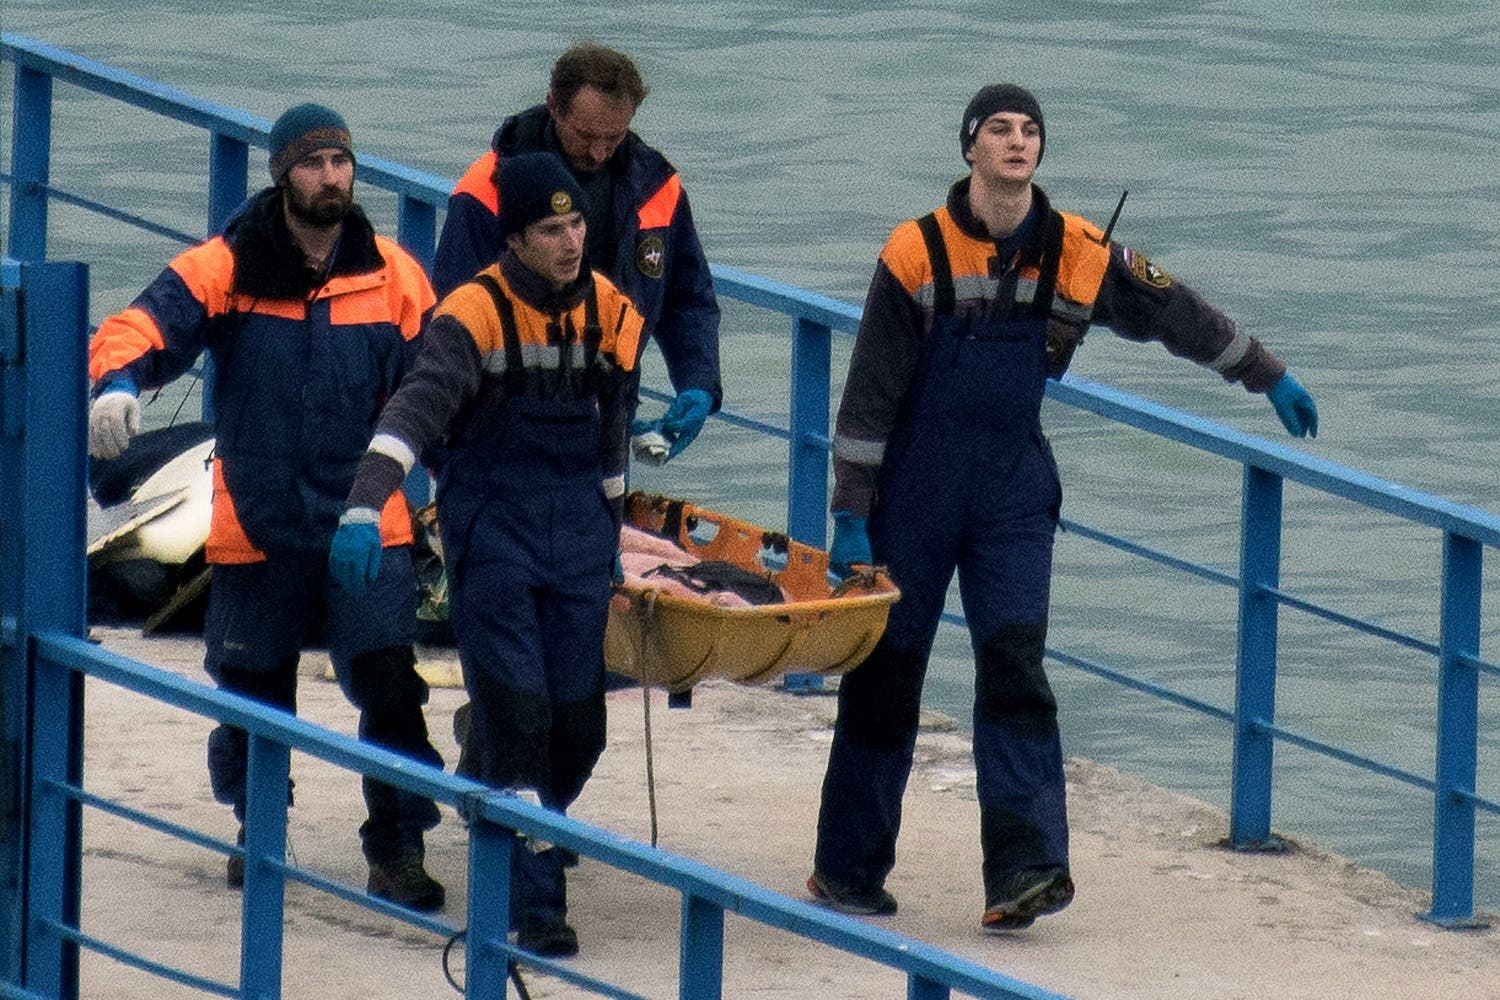 Russian rescuers carry a stretcher with a body recovered after a Russian military plane crashed in the Black Sea. (AFP)